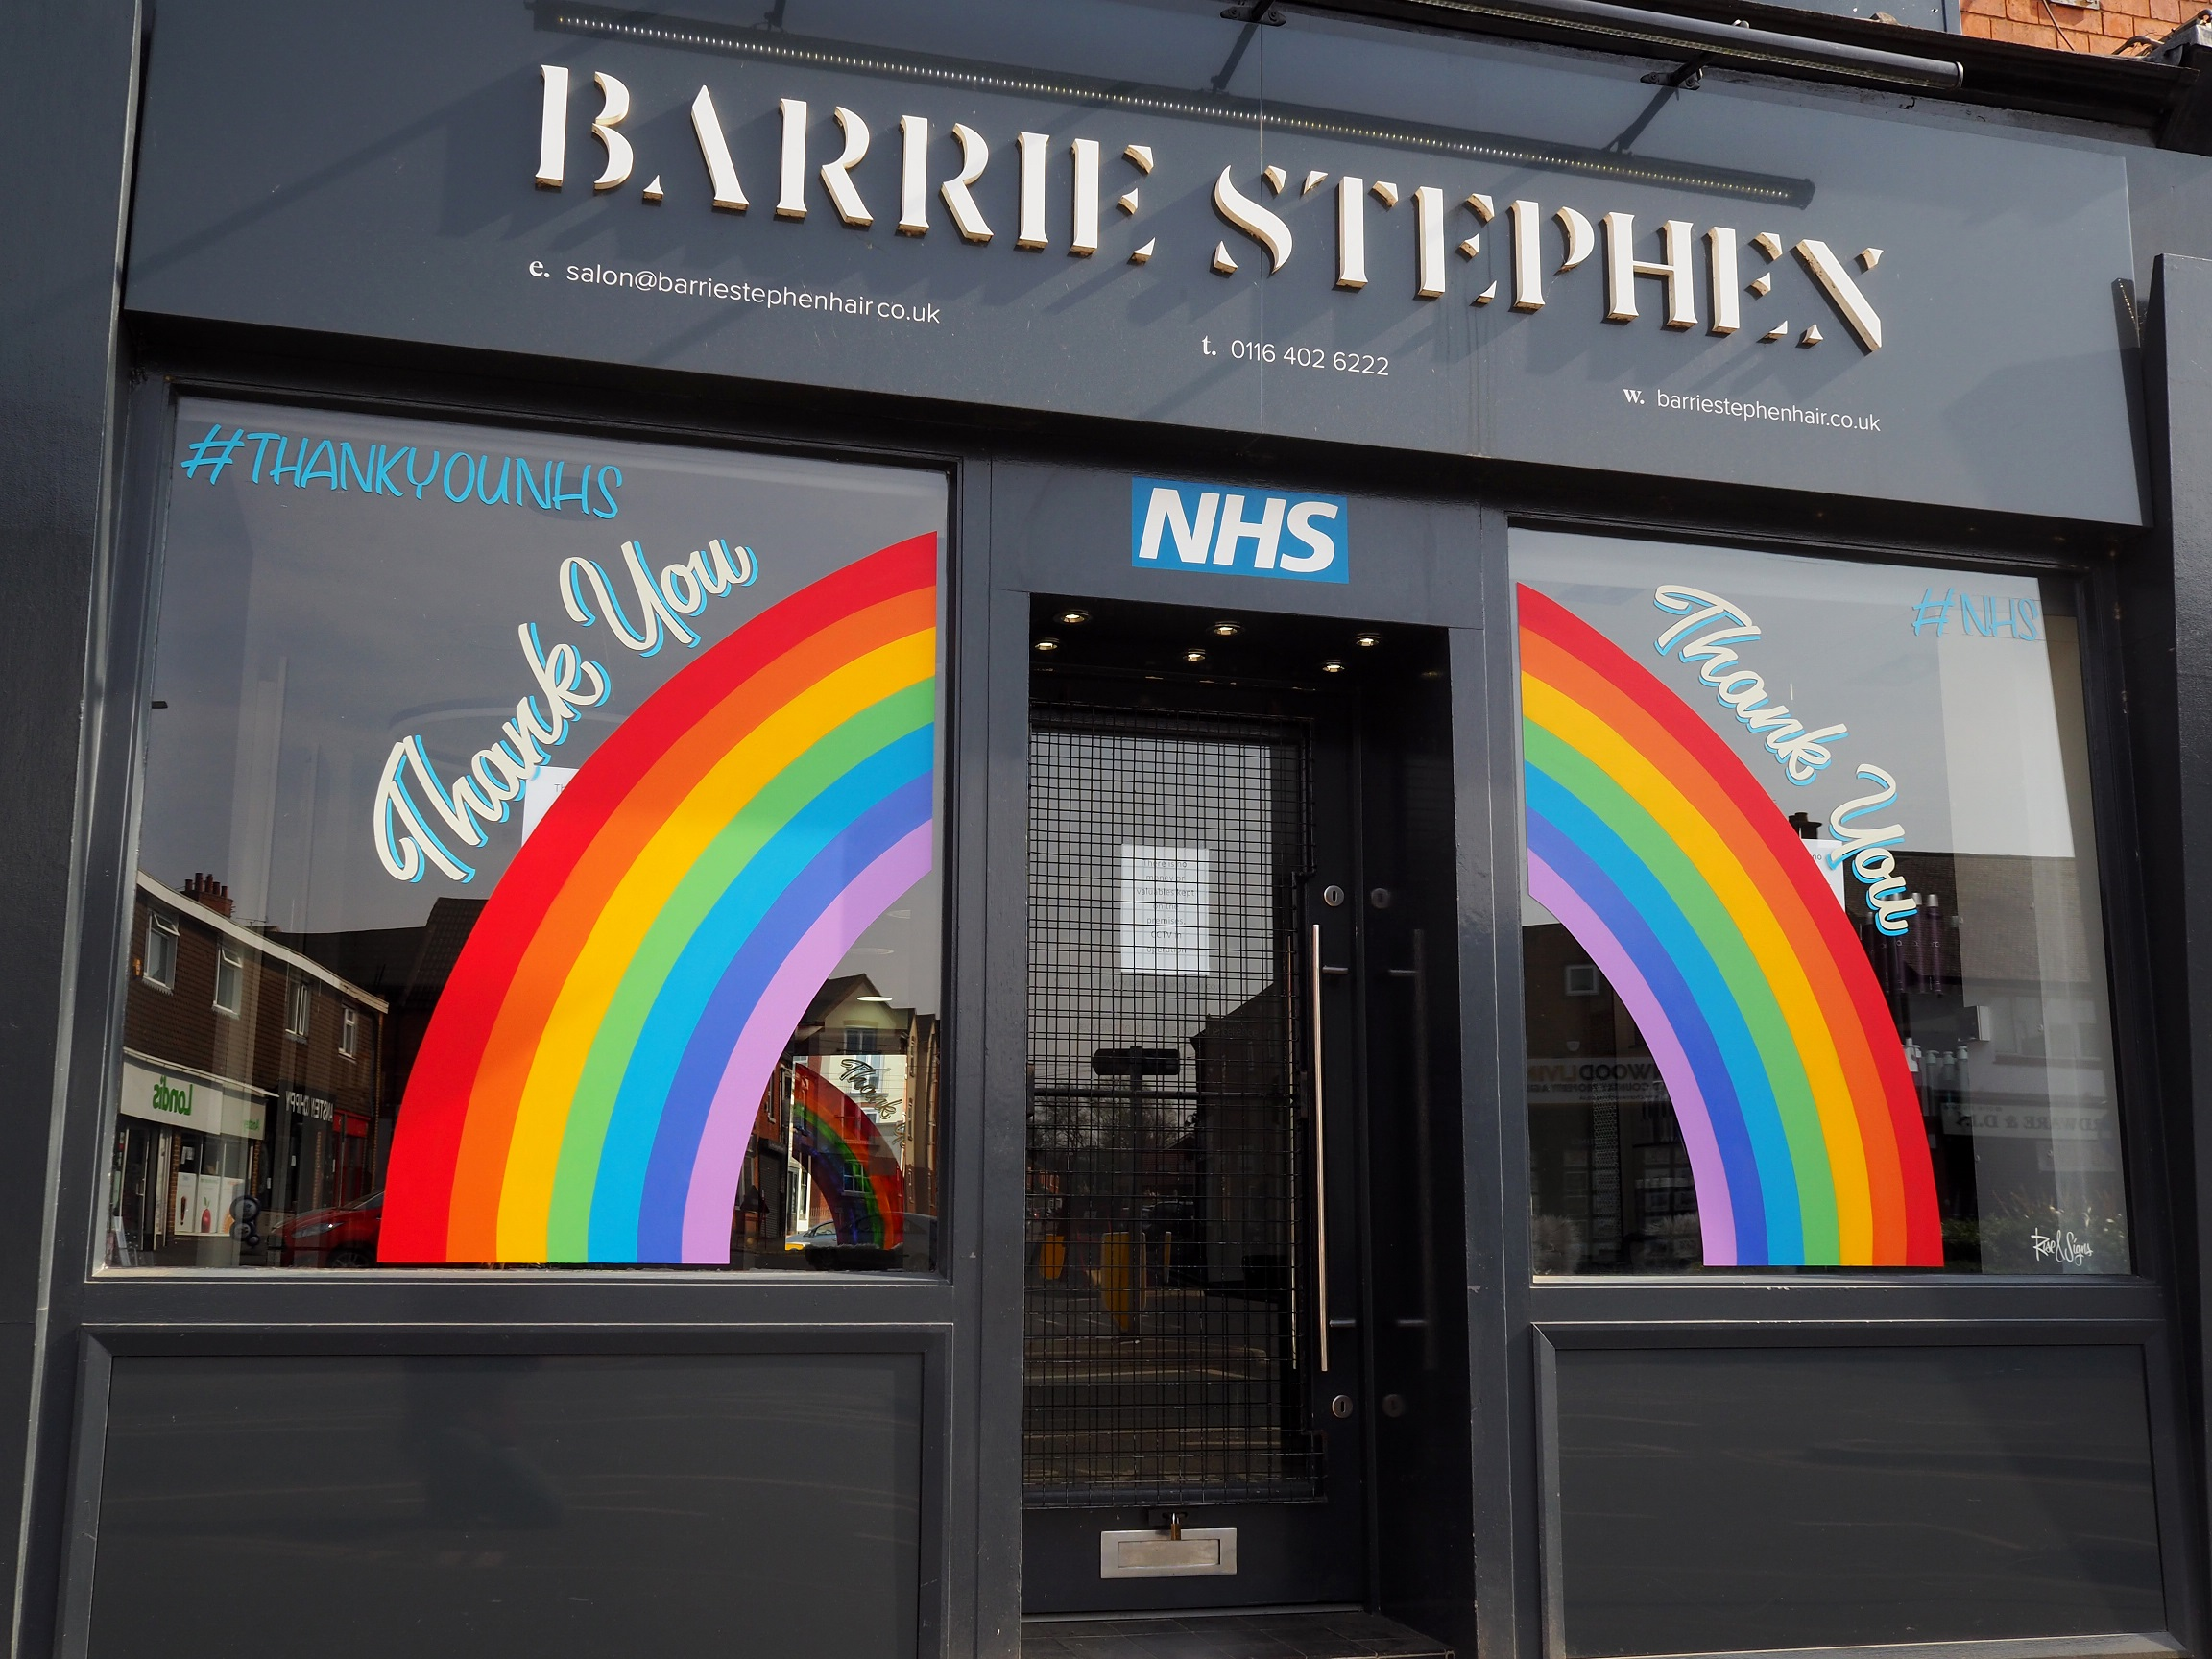 Leicester hairdresser thanks NHS workers with rainbow windows